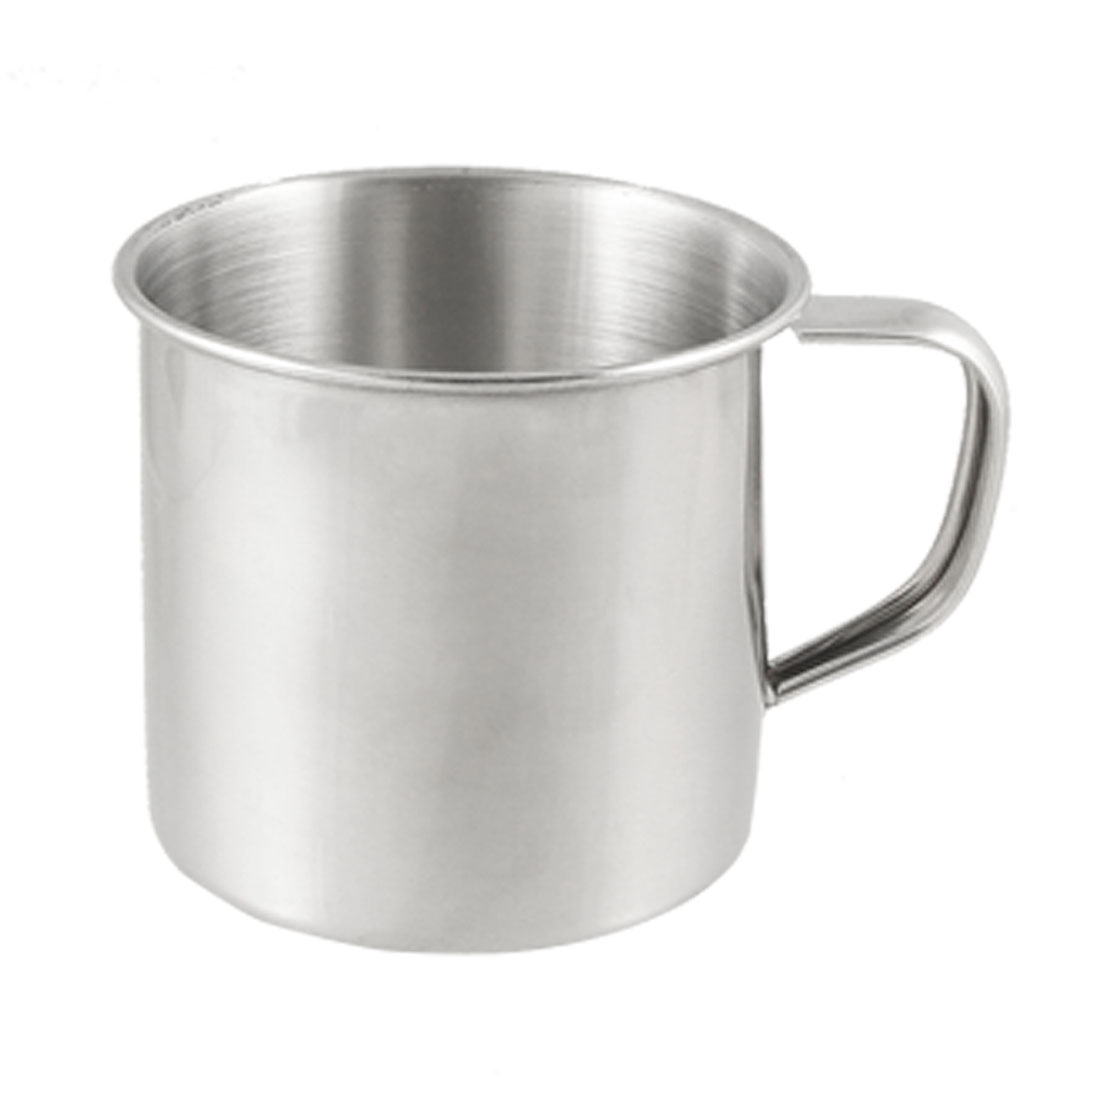 7.5cm Diameter 200ML Stainless Steel Water Cup Mug Silver Tone